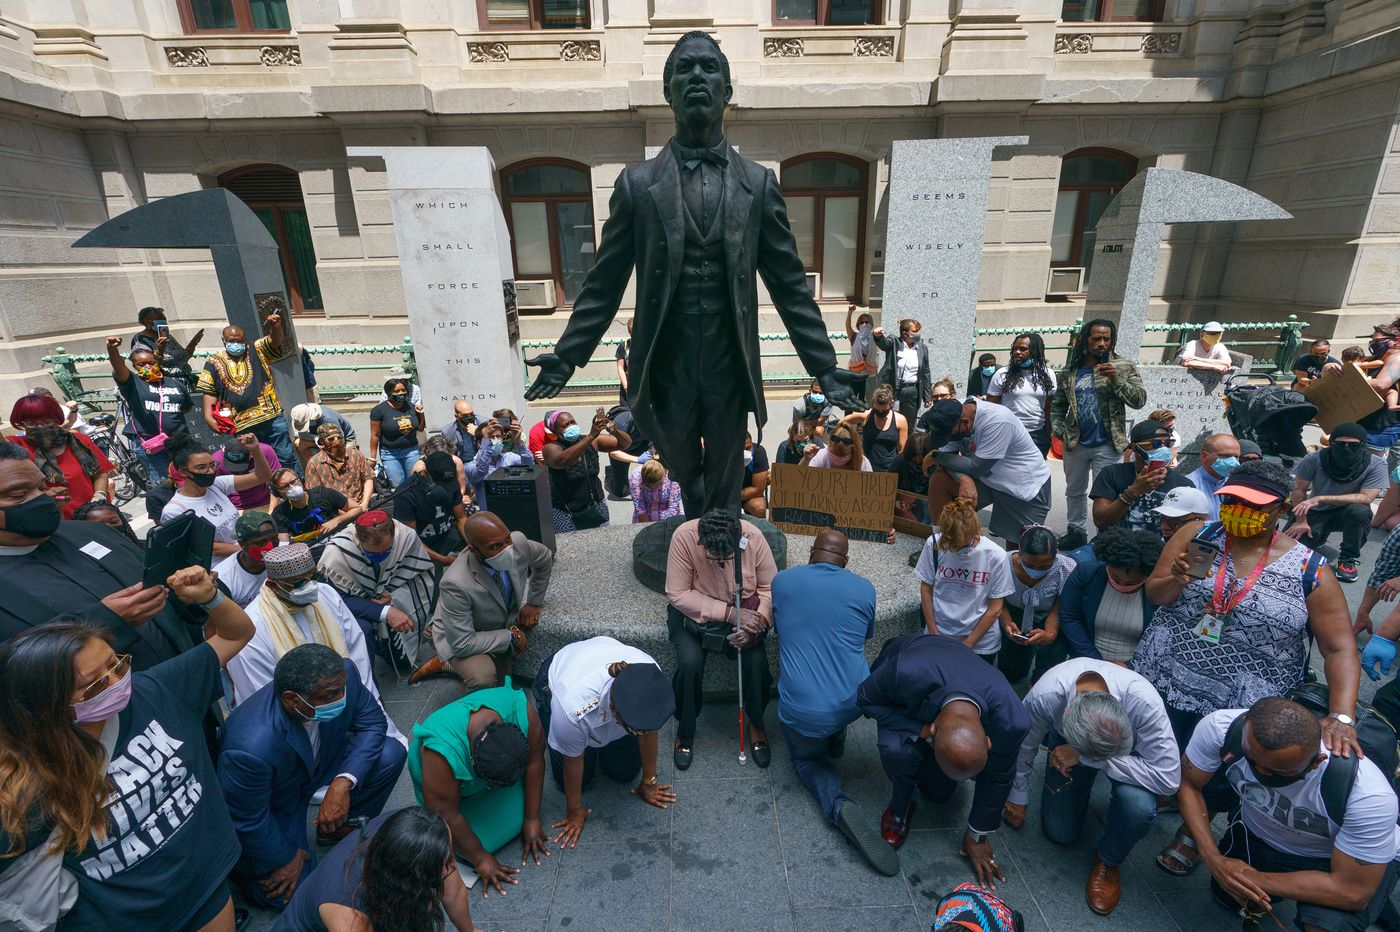 We finally removed a racist statue in Philly. What comes next for our public art? | Opinion